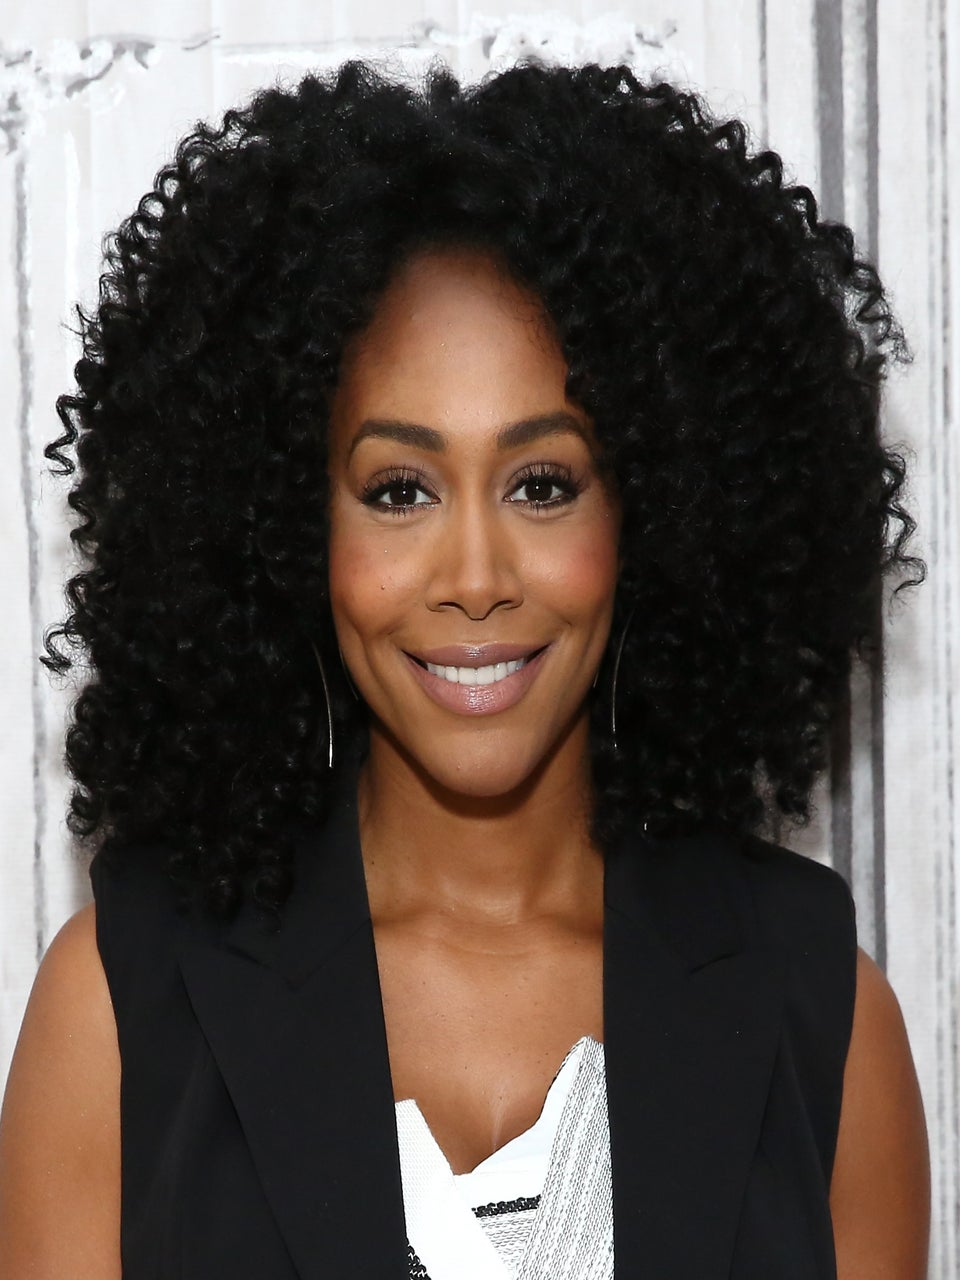 Luke Cage's Simone Missick Opens Up About Playing TV's 'First Black Female Superhero'